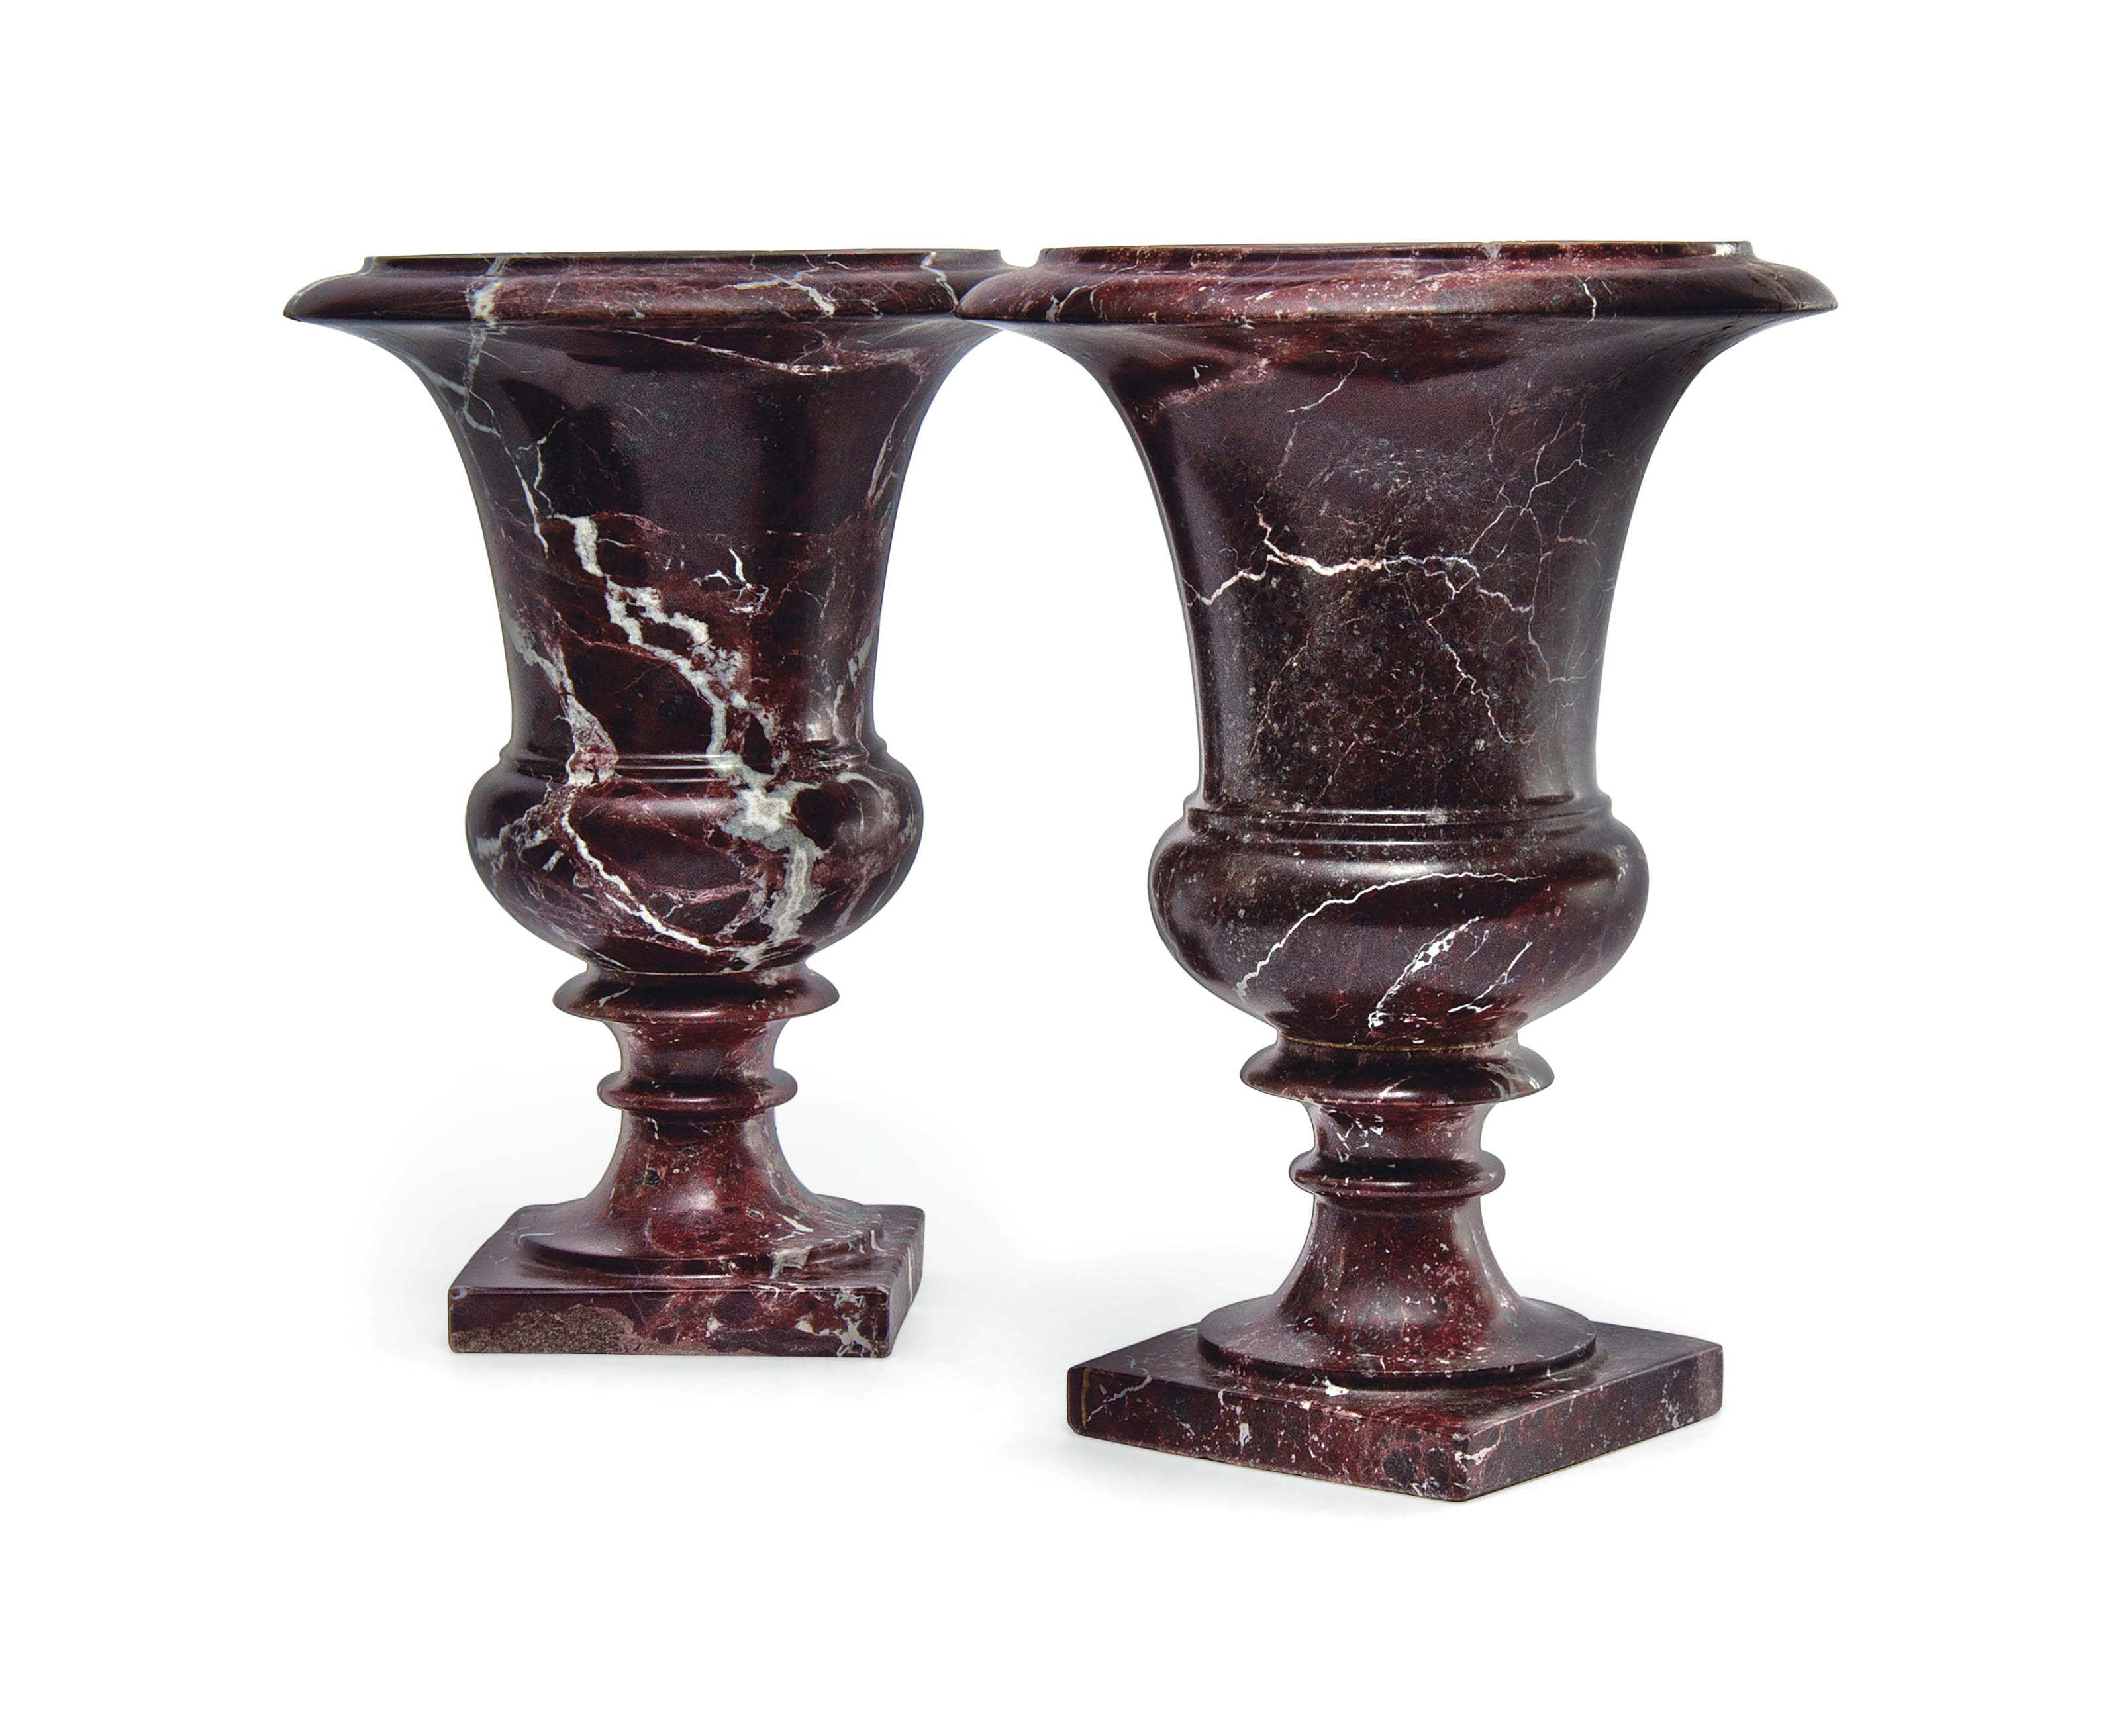 A PAIR OF CONTINENTAL 'ROUGE ROYALE' MARBLE URNS